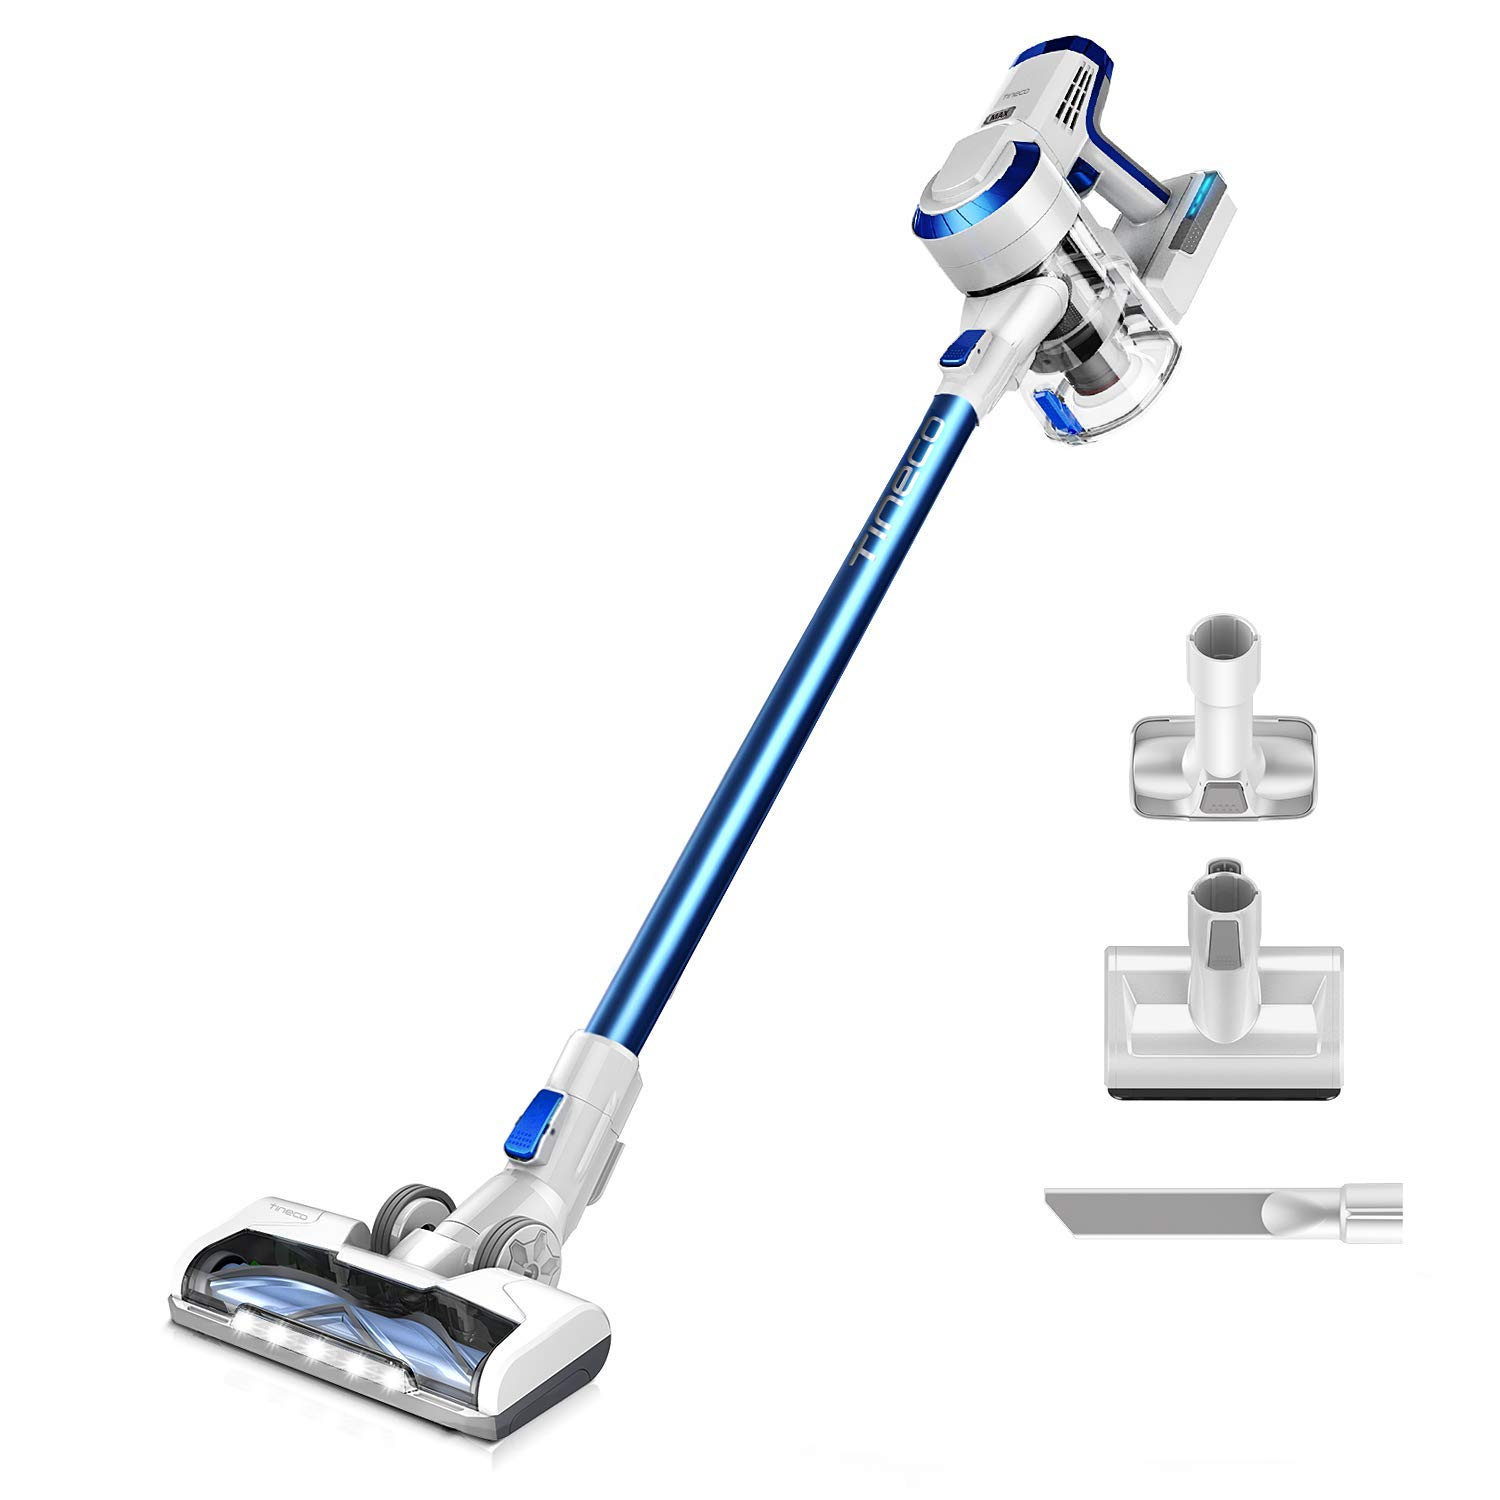 Tineco Cordless Cleaner Lightweight Handheld